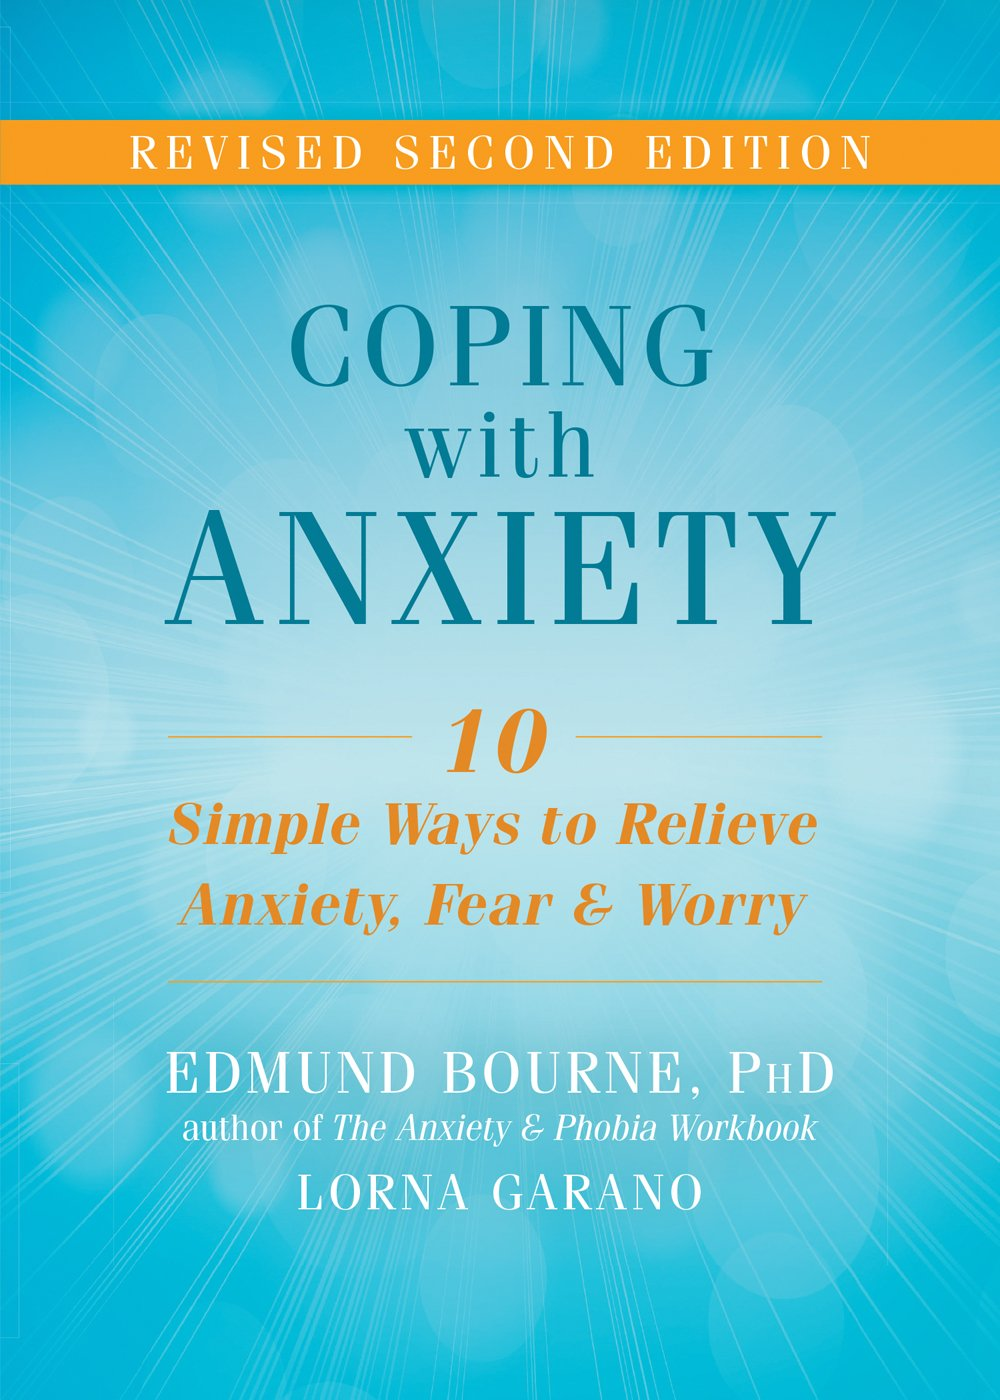 Workbooks the anxiety and phobia workbook 5th edition : Amazon.com: Edmund J. Bourne: Books, Biography, Blog, Audiobooks ...